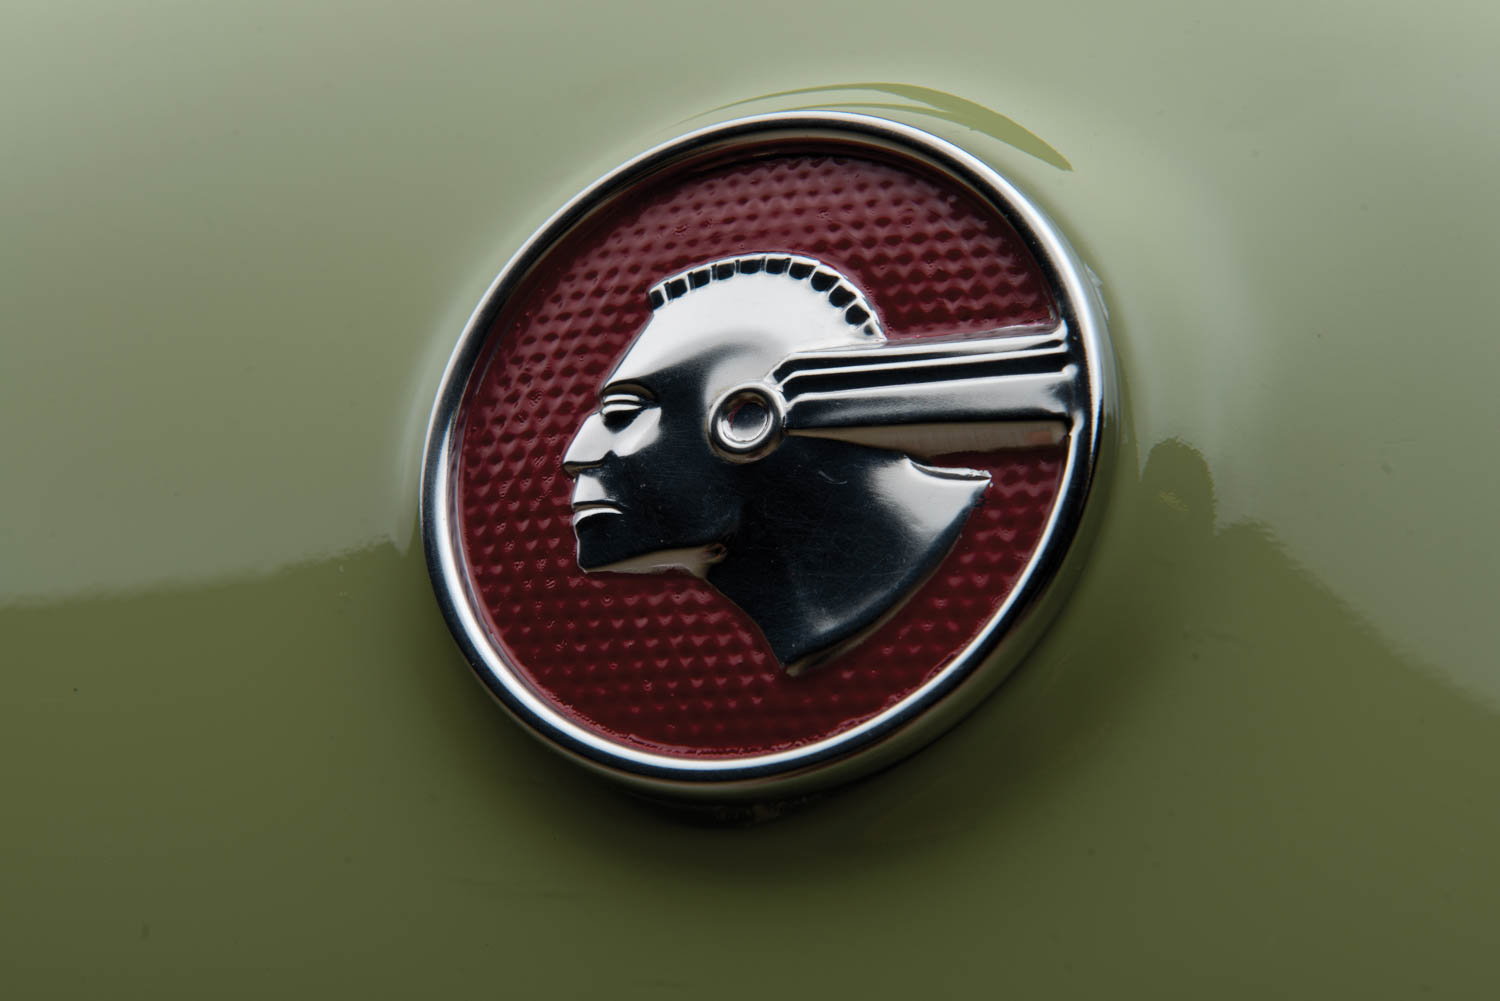 1953 Pontiac Chieftain Deluxe Eight Custom Catalina emblem